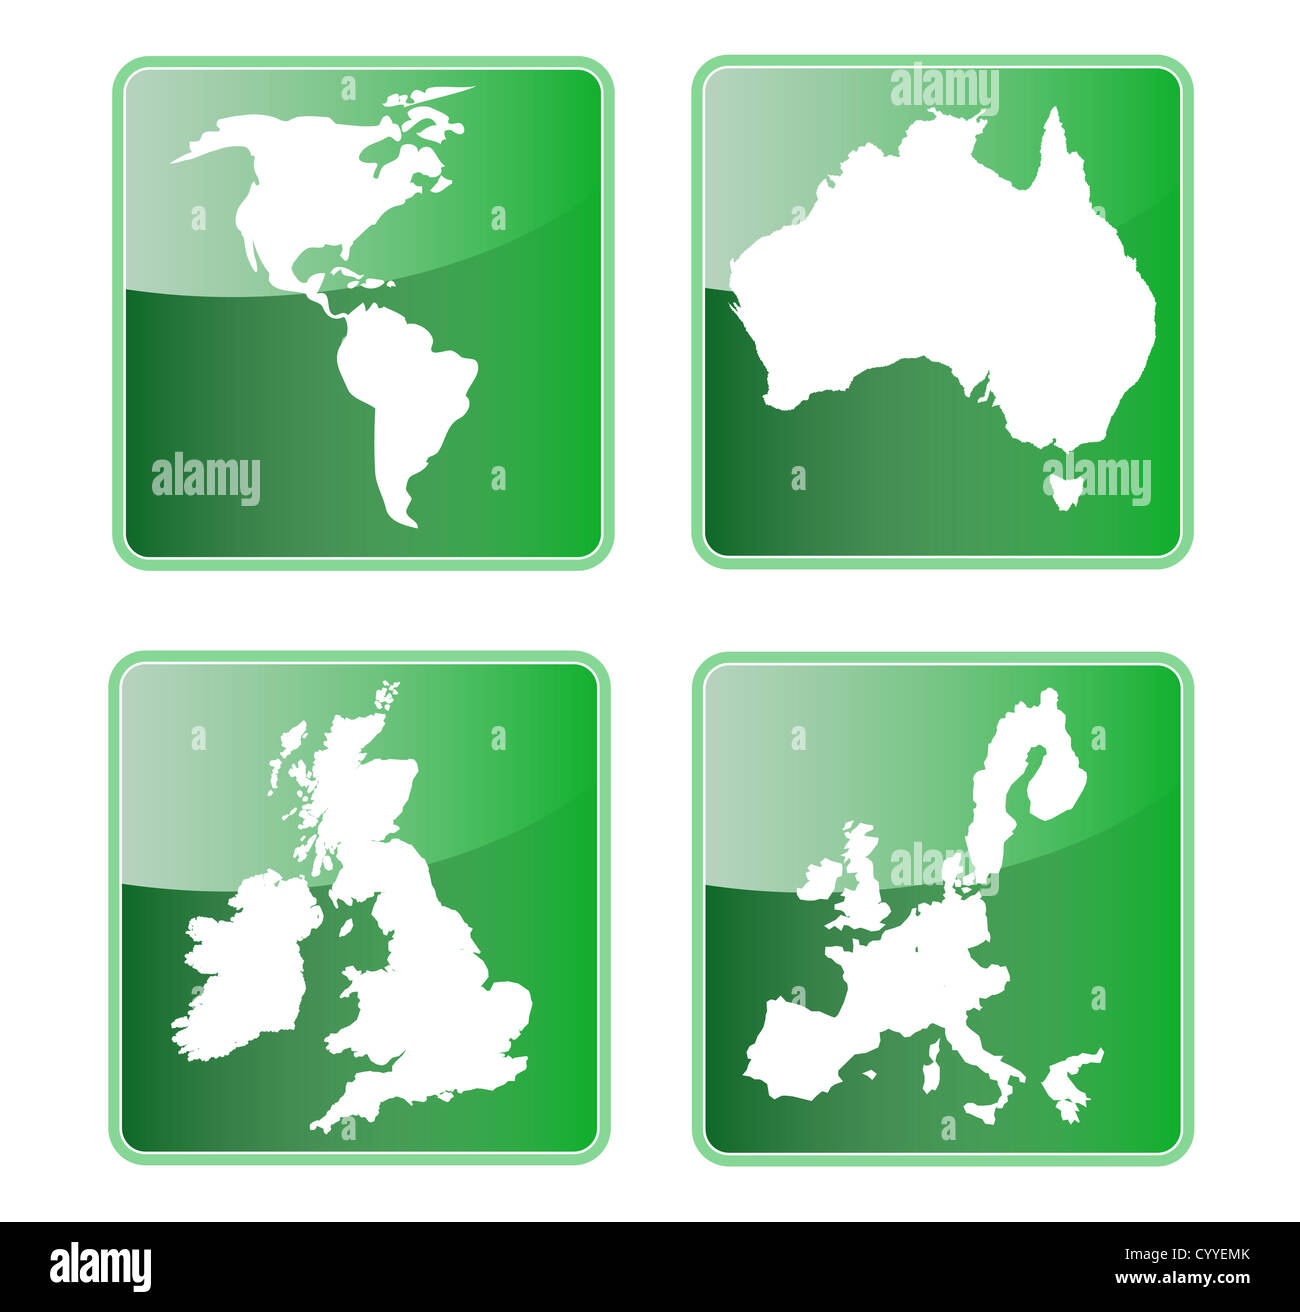 Icon showing map of north and south america australia great britain british isles and the european union. - Stock Image